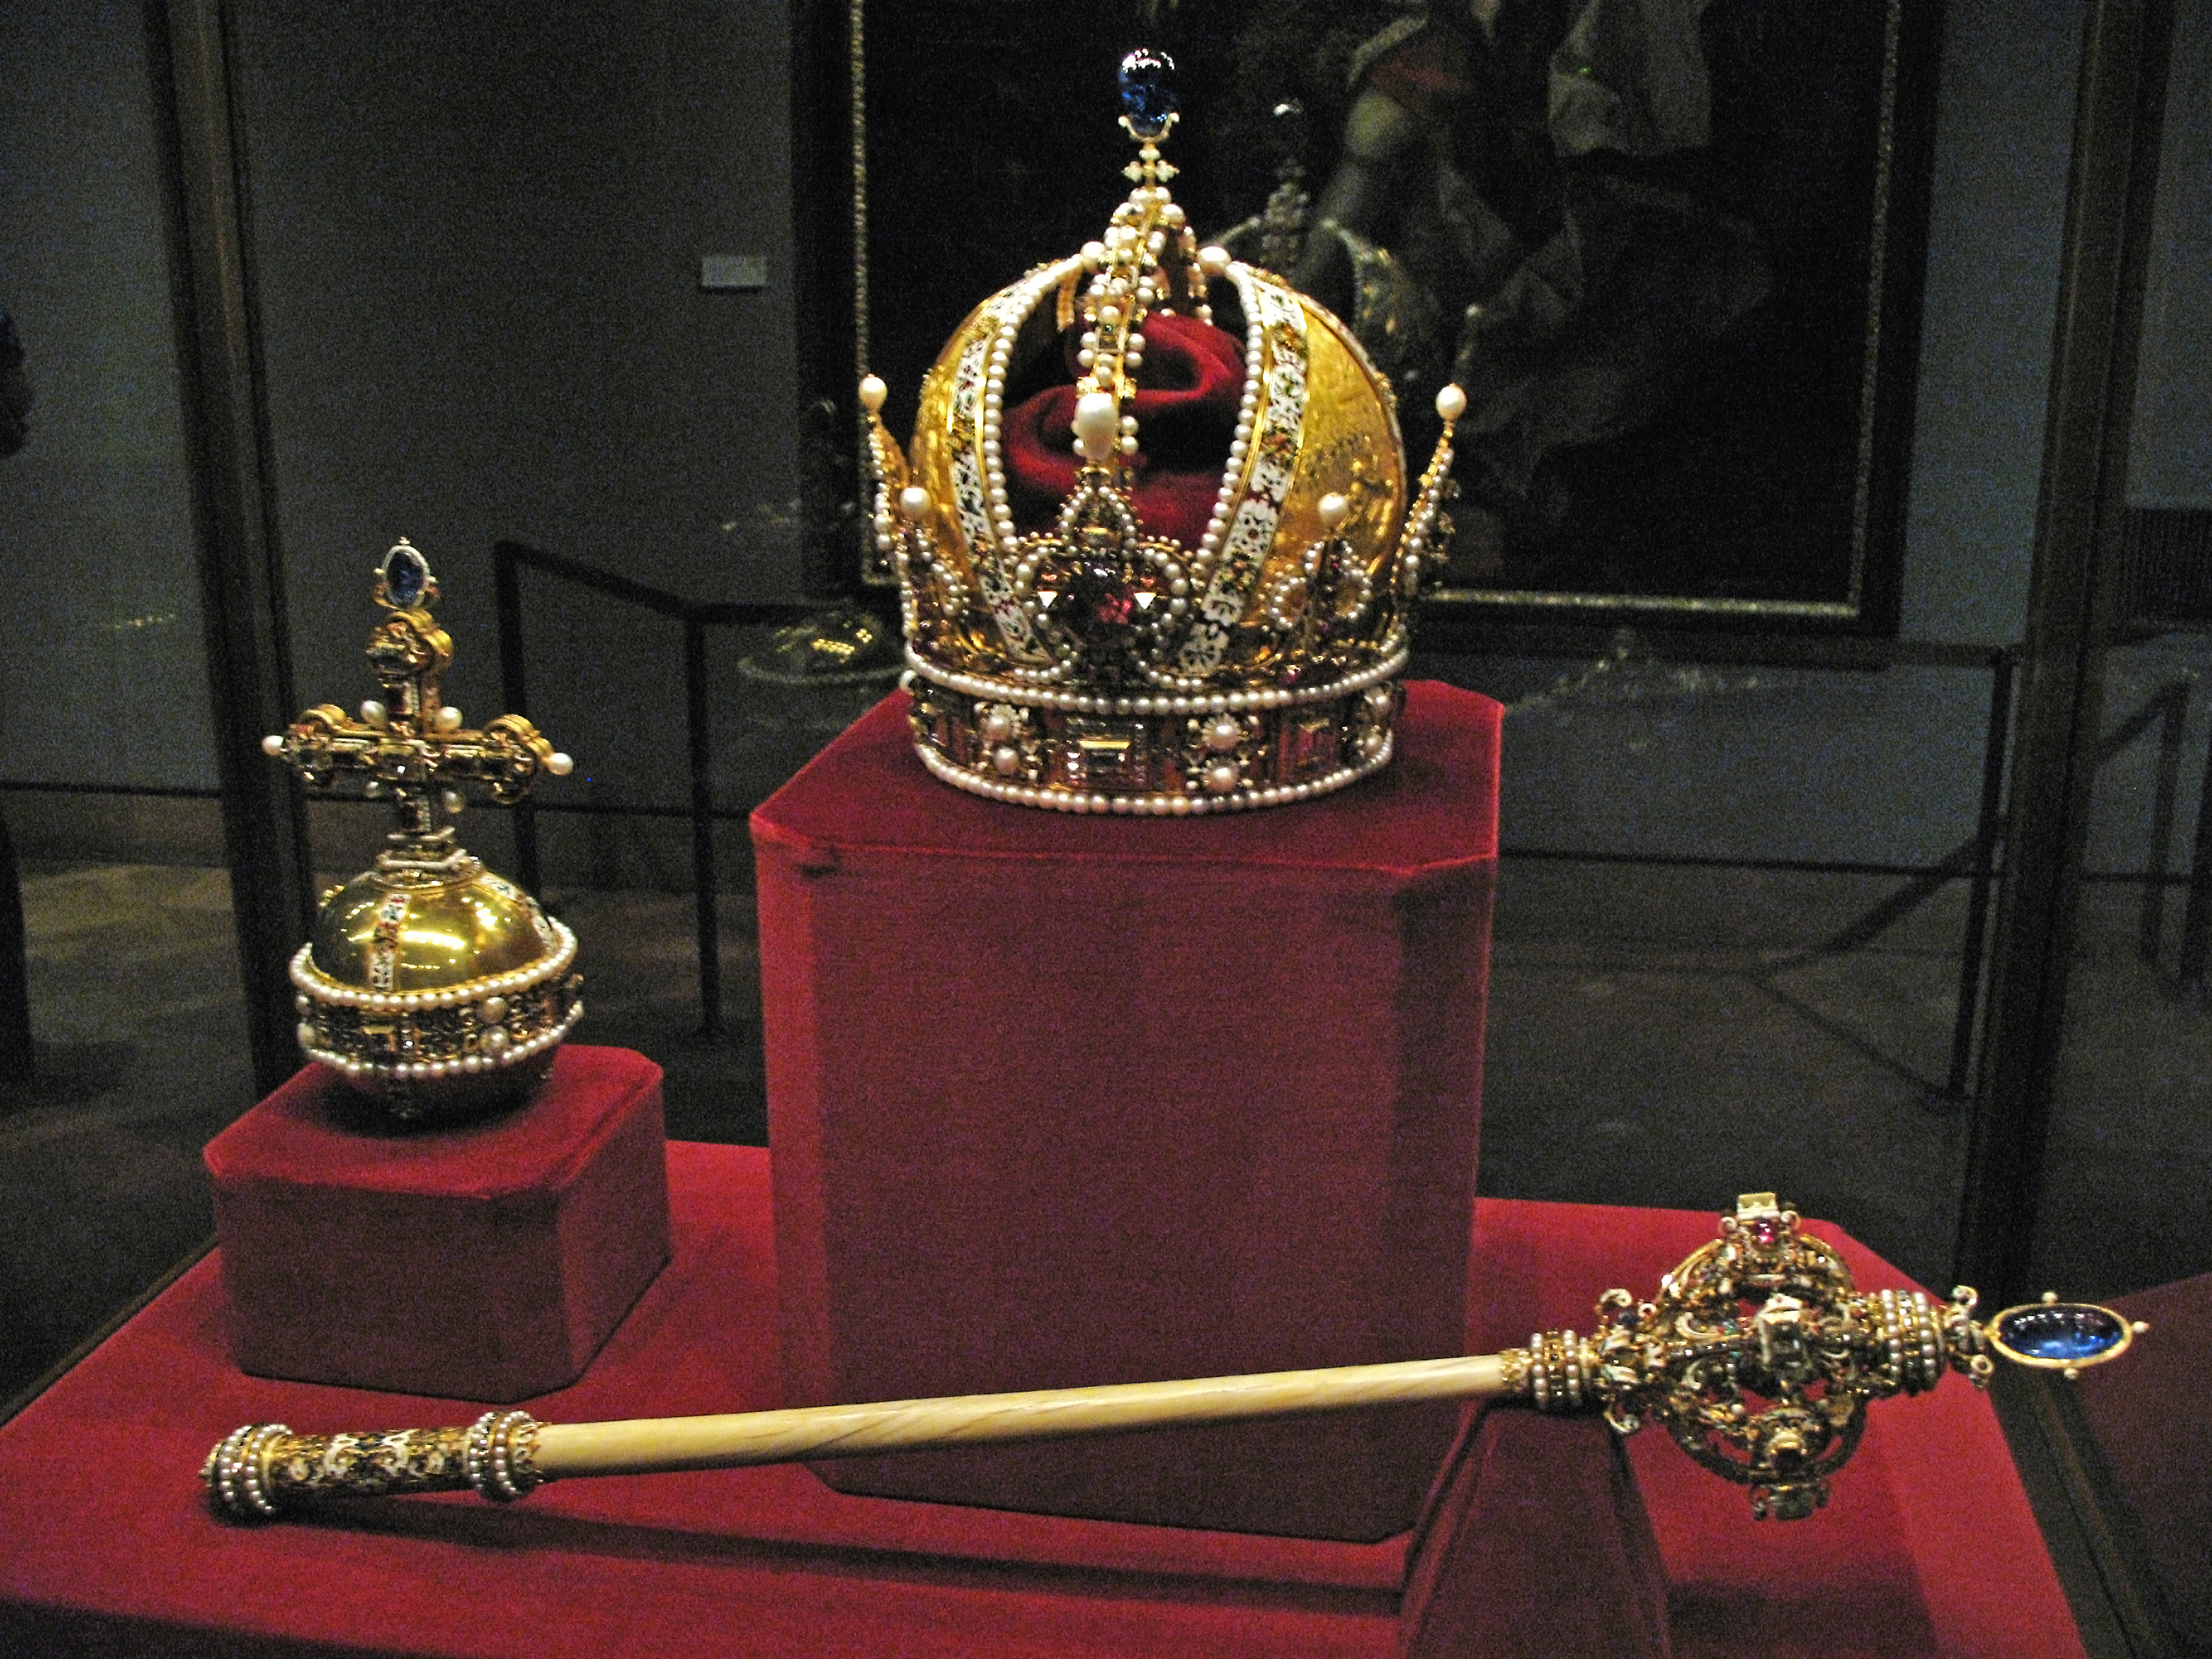 One of the Crown Jewels inside the Tower of London